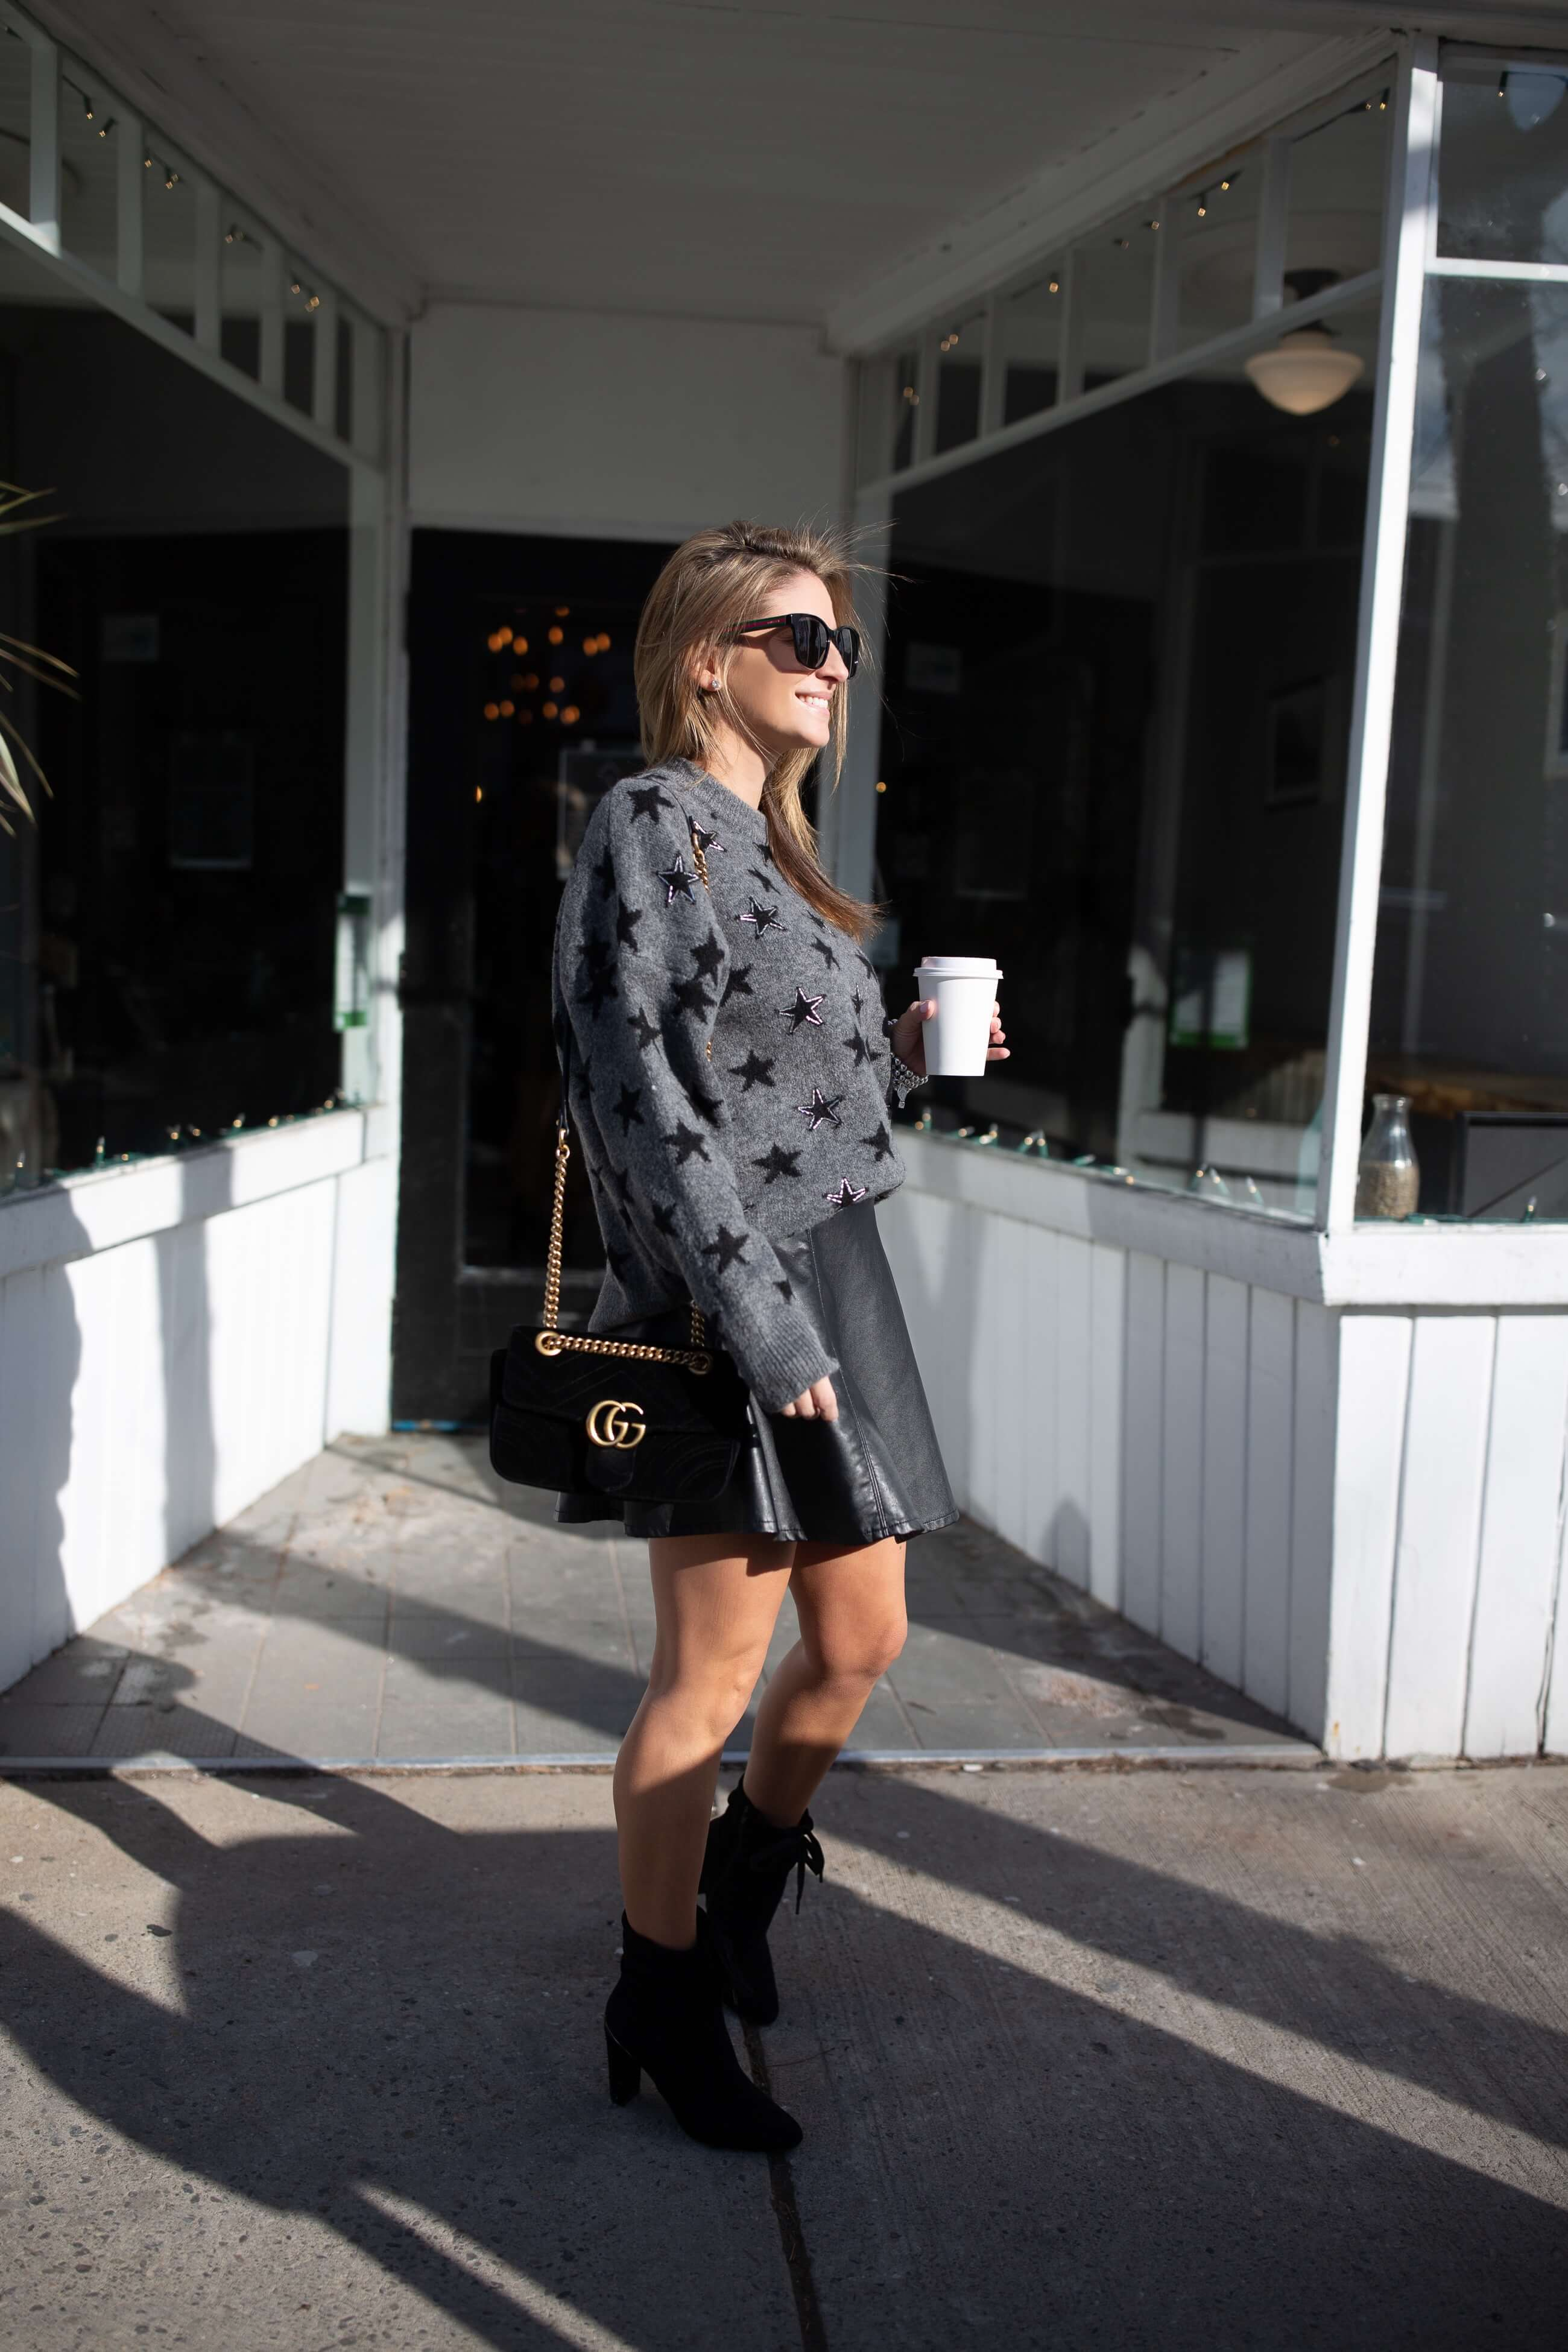 Grey Star sweater with leather skirt; winter style; mandy furnis sparkleshinylove